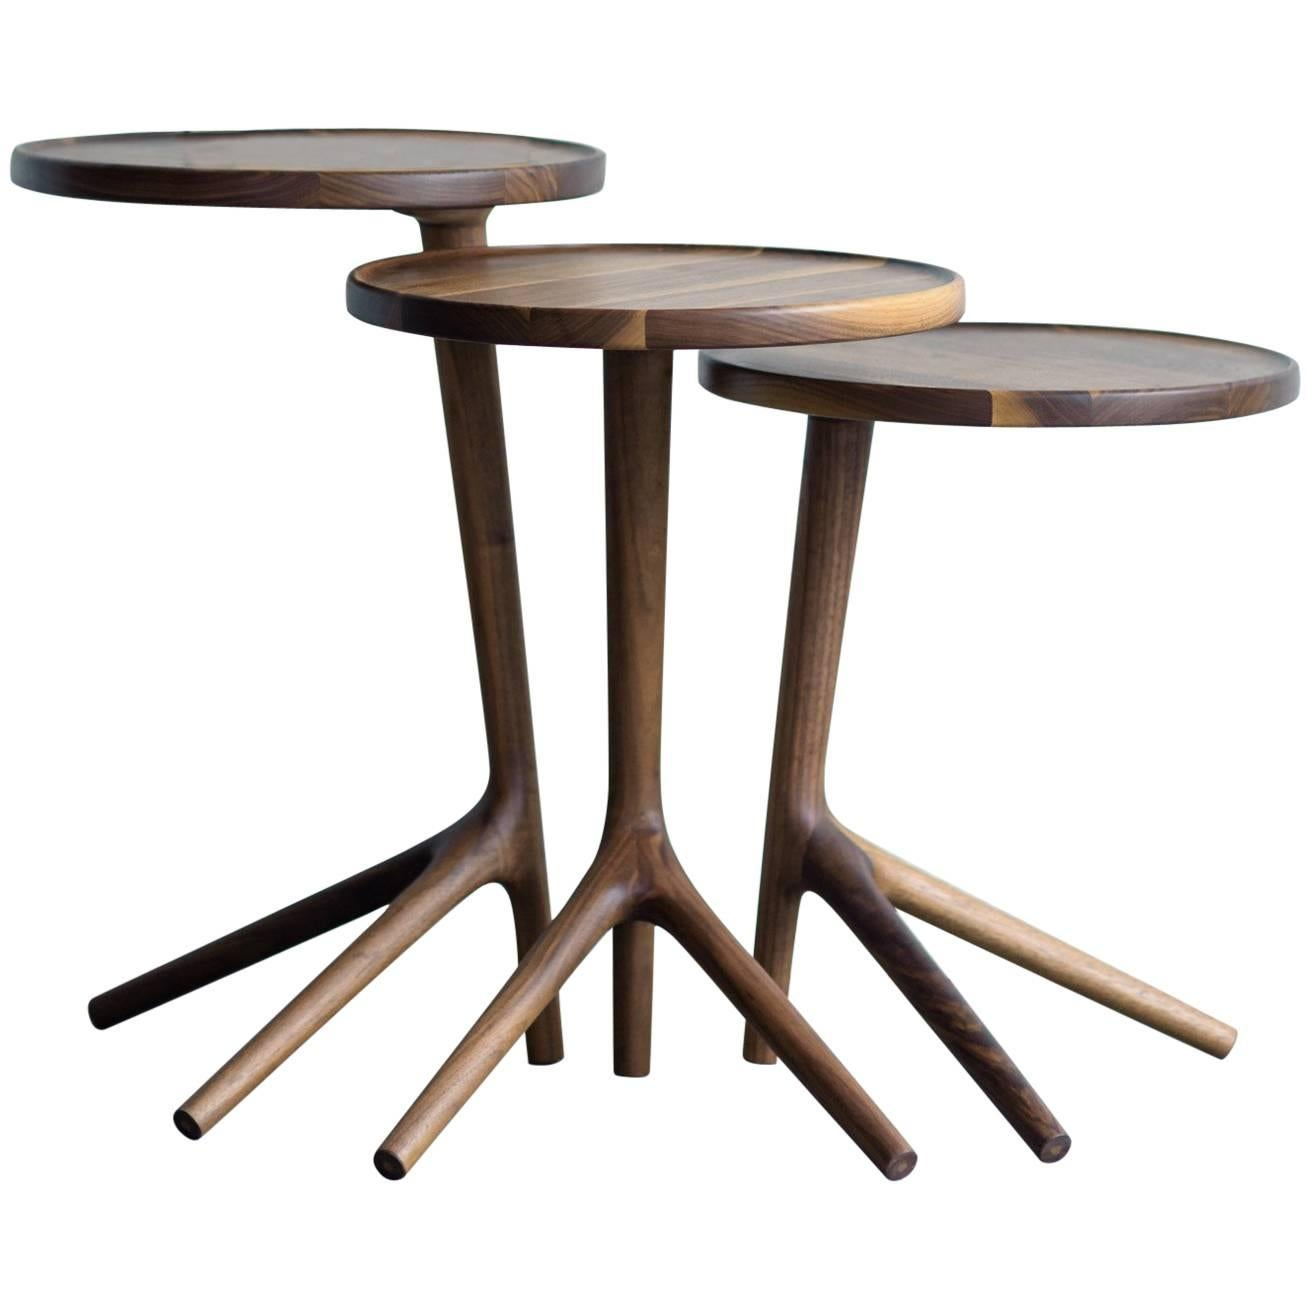 Beau Tripod Accent Table In Walnut Table Handcrafted   Fernweh Woodworking